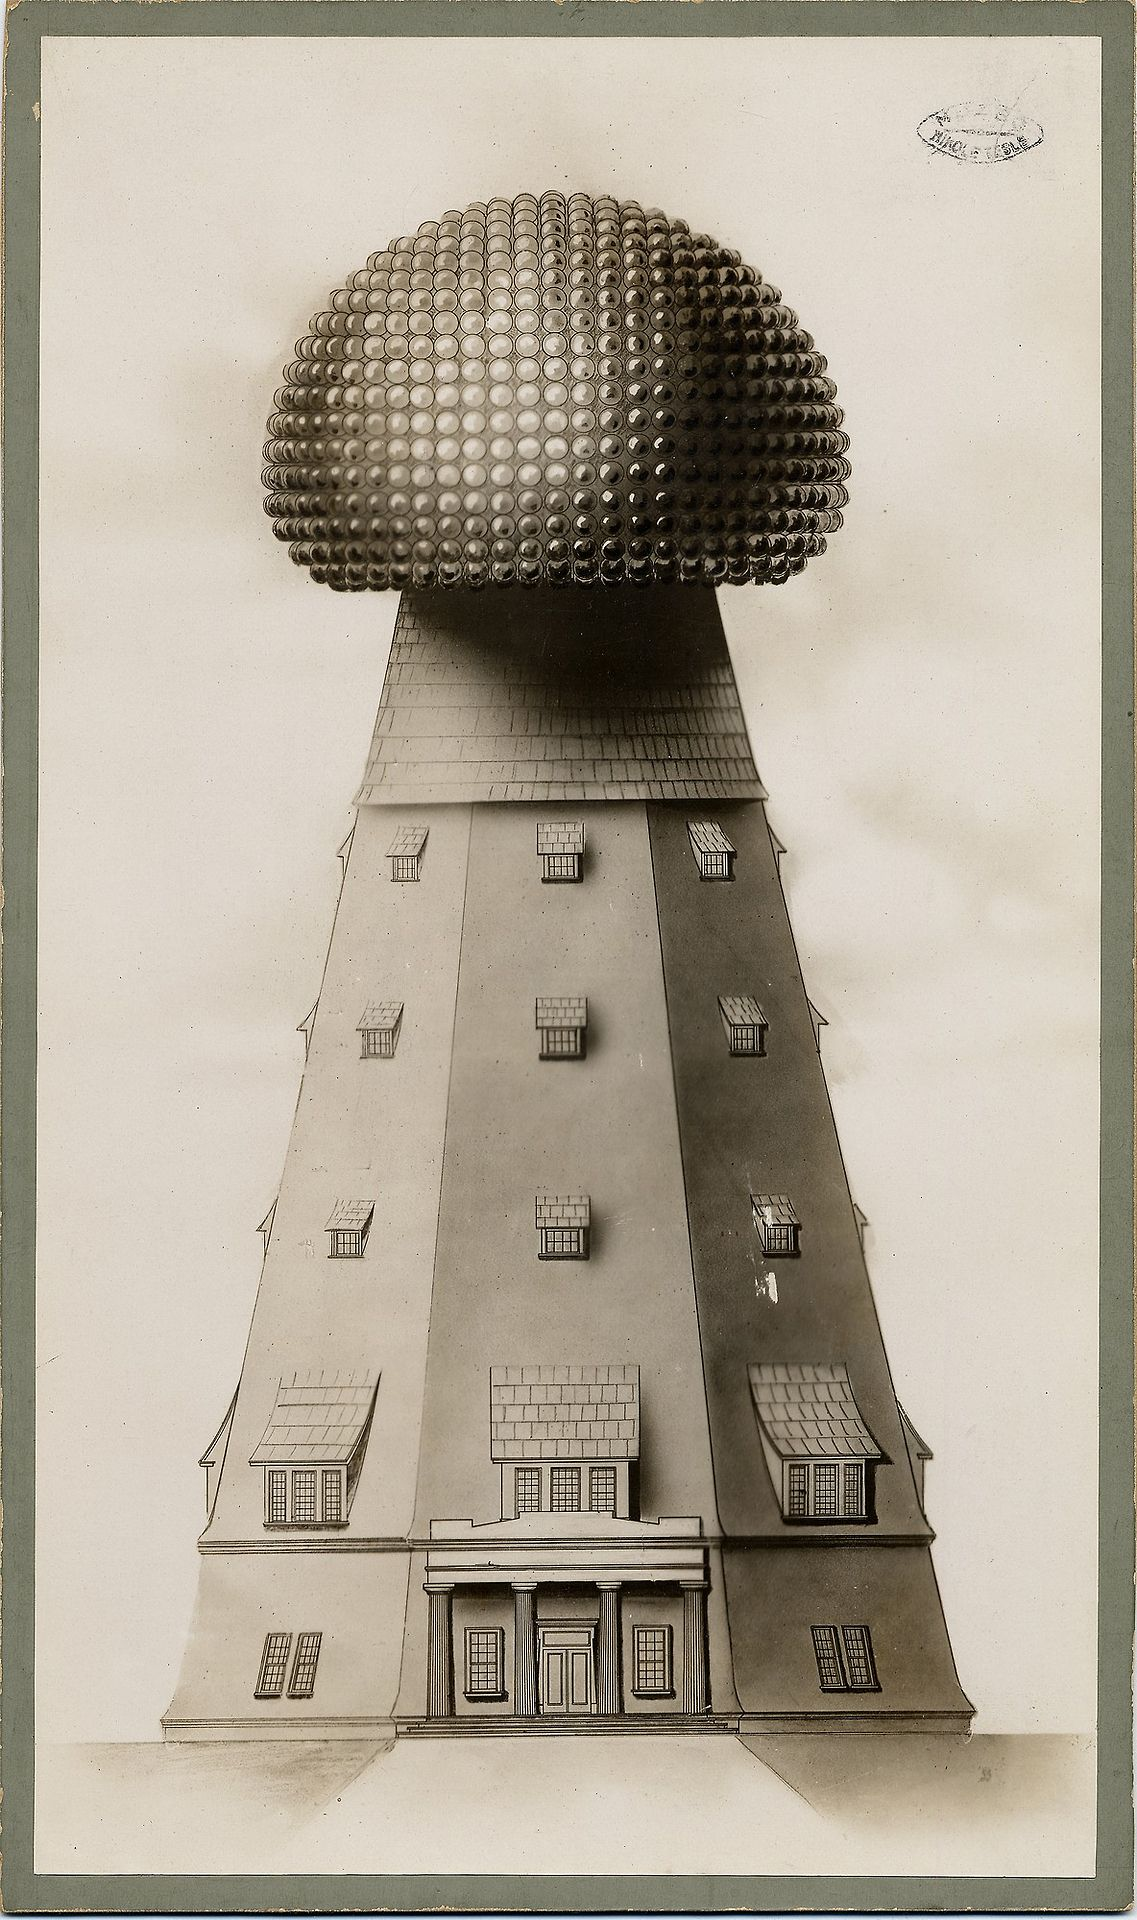 Illustration Of The Tesla Tower On Long Island In New York Also Teslawirelesspowercircuitjpg Known As Wardenclyffe It Began Construction 1901 An Early Wireless